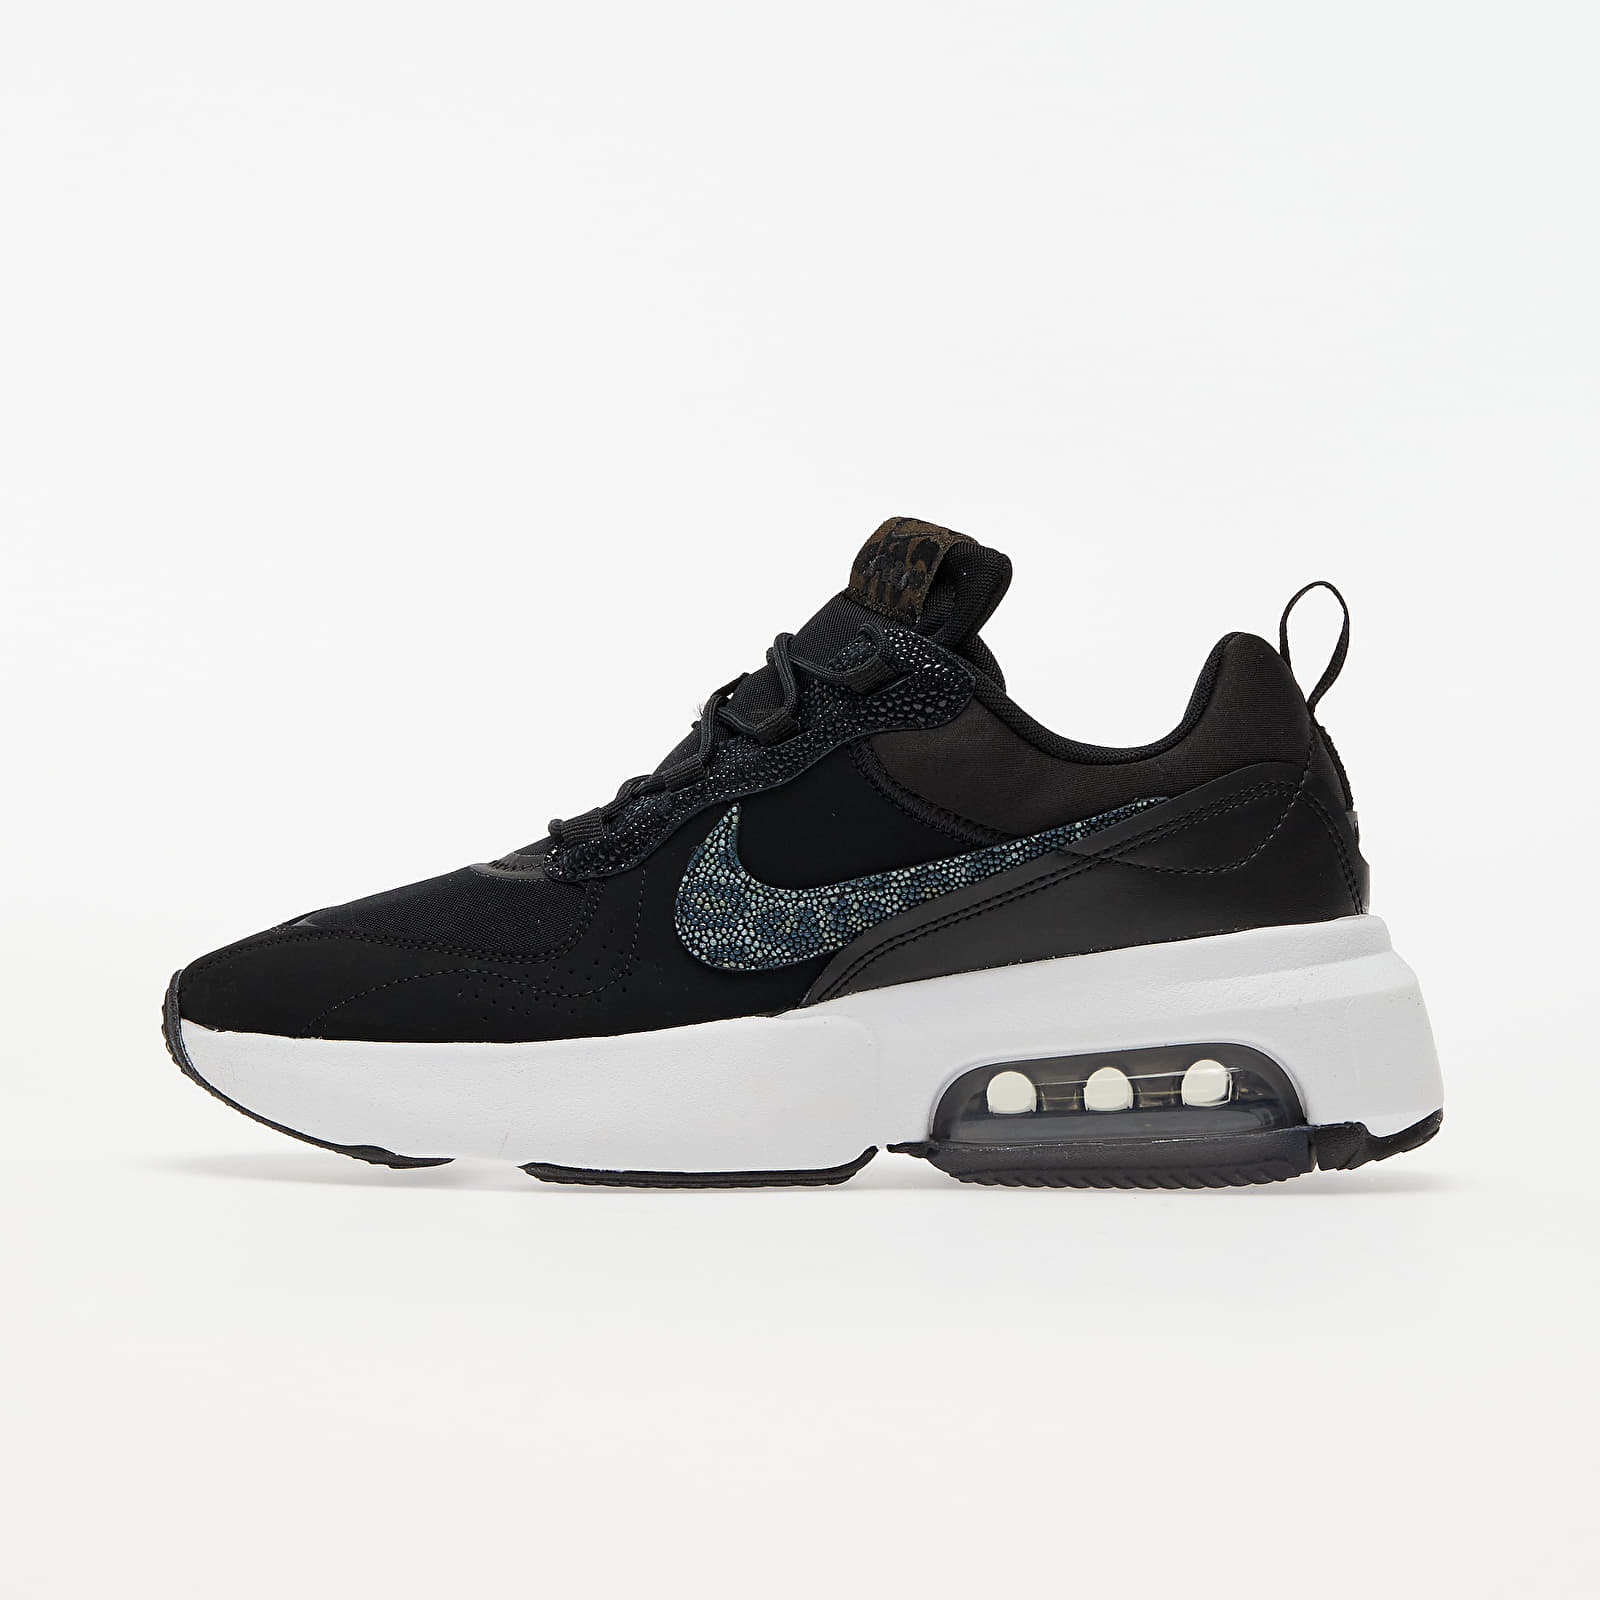 Nike W Air Max Verona SE Black/ Black-Anthracite-Off Noir EUR 41